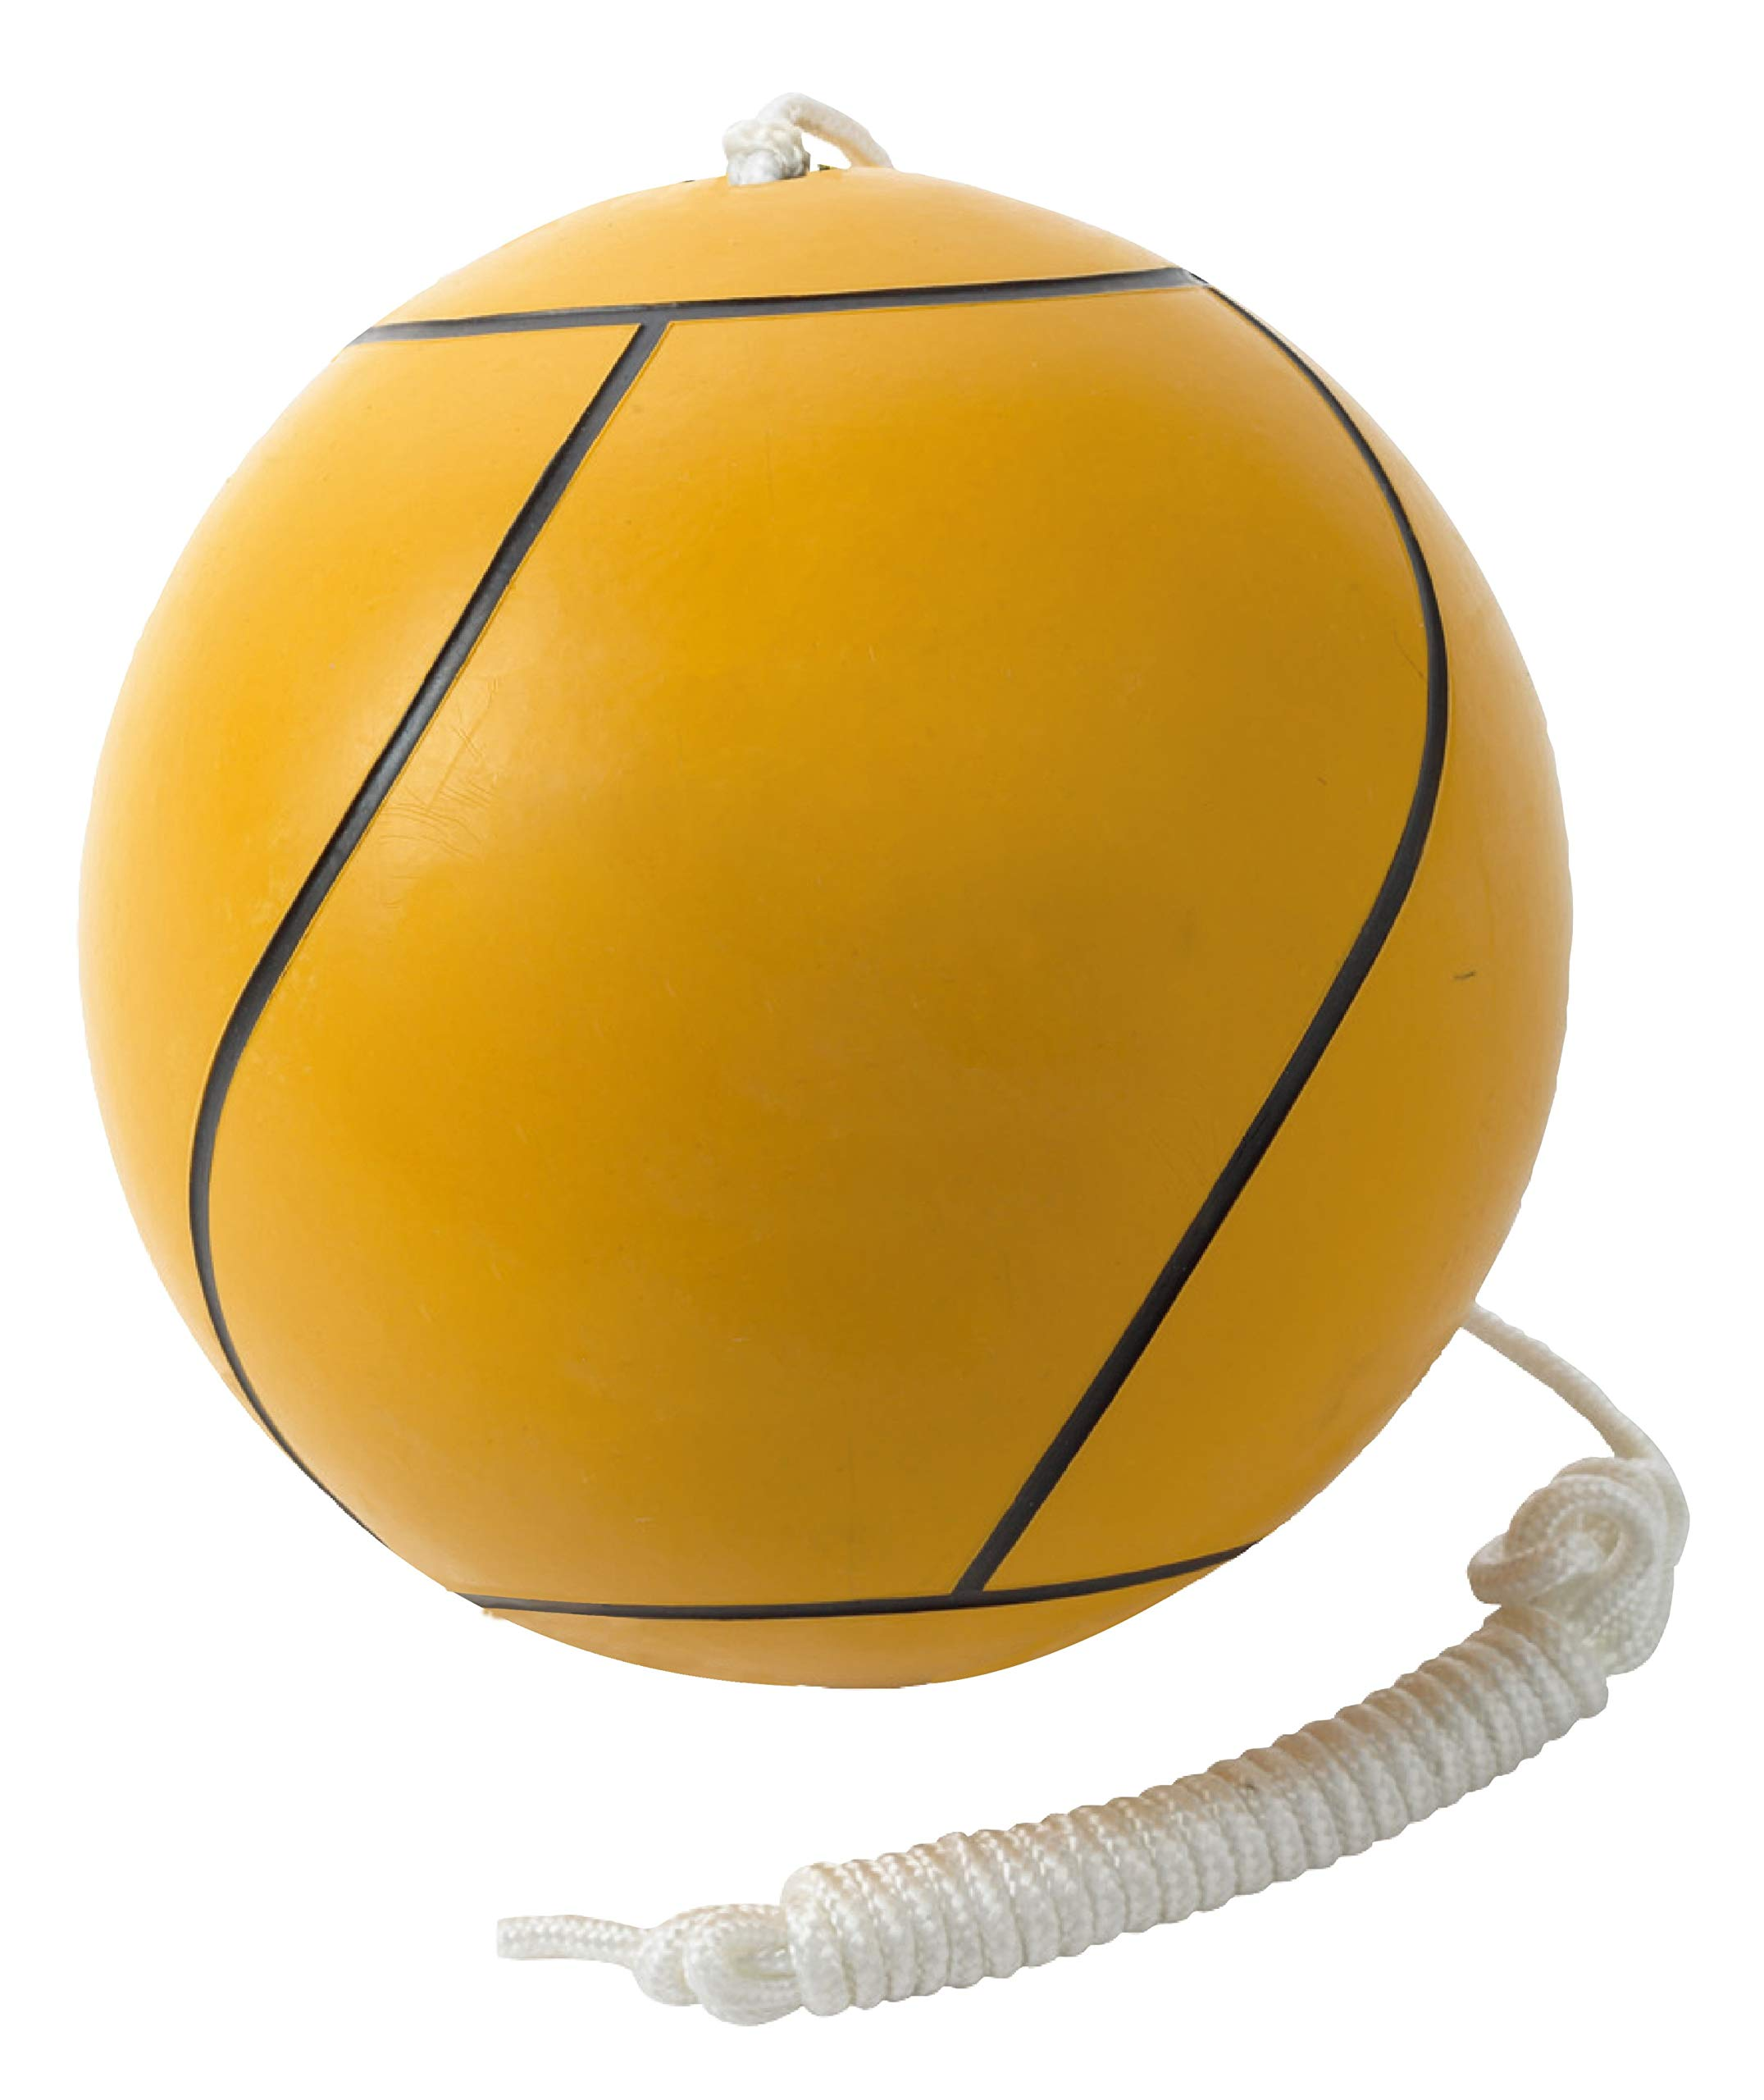 MD Sports Advanced Tetherball Set by MD Sports (Image #2)